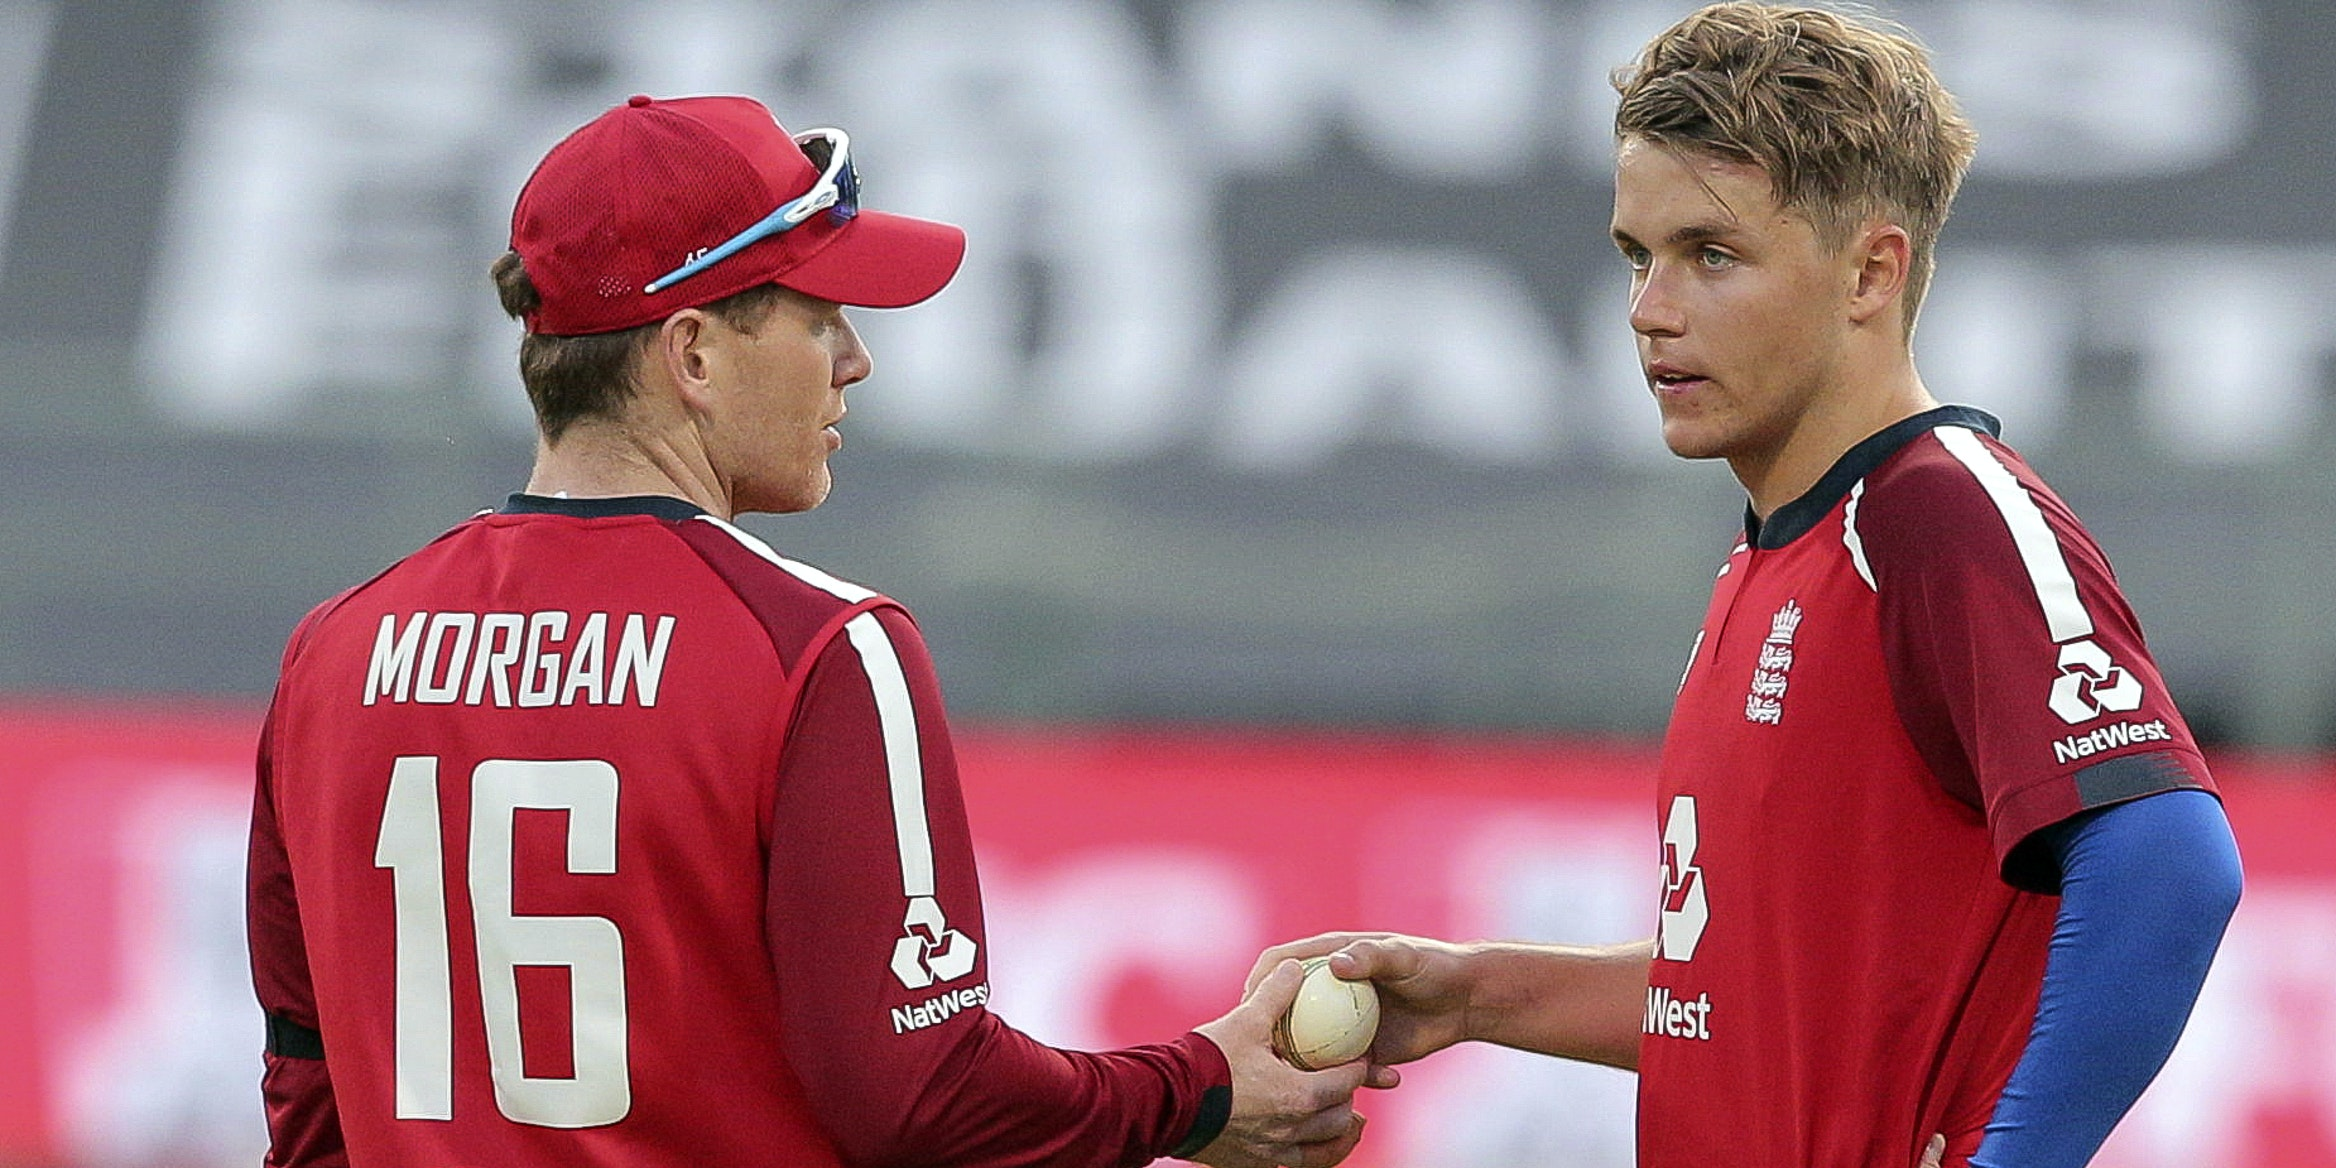 Eoin Morgan insists balcony messages in 'spirit of the game' and will continue